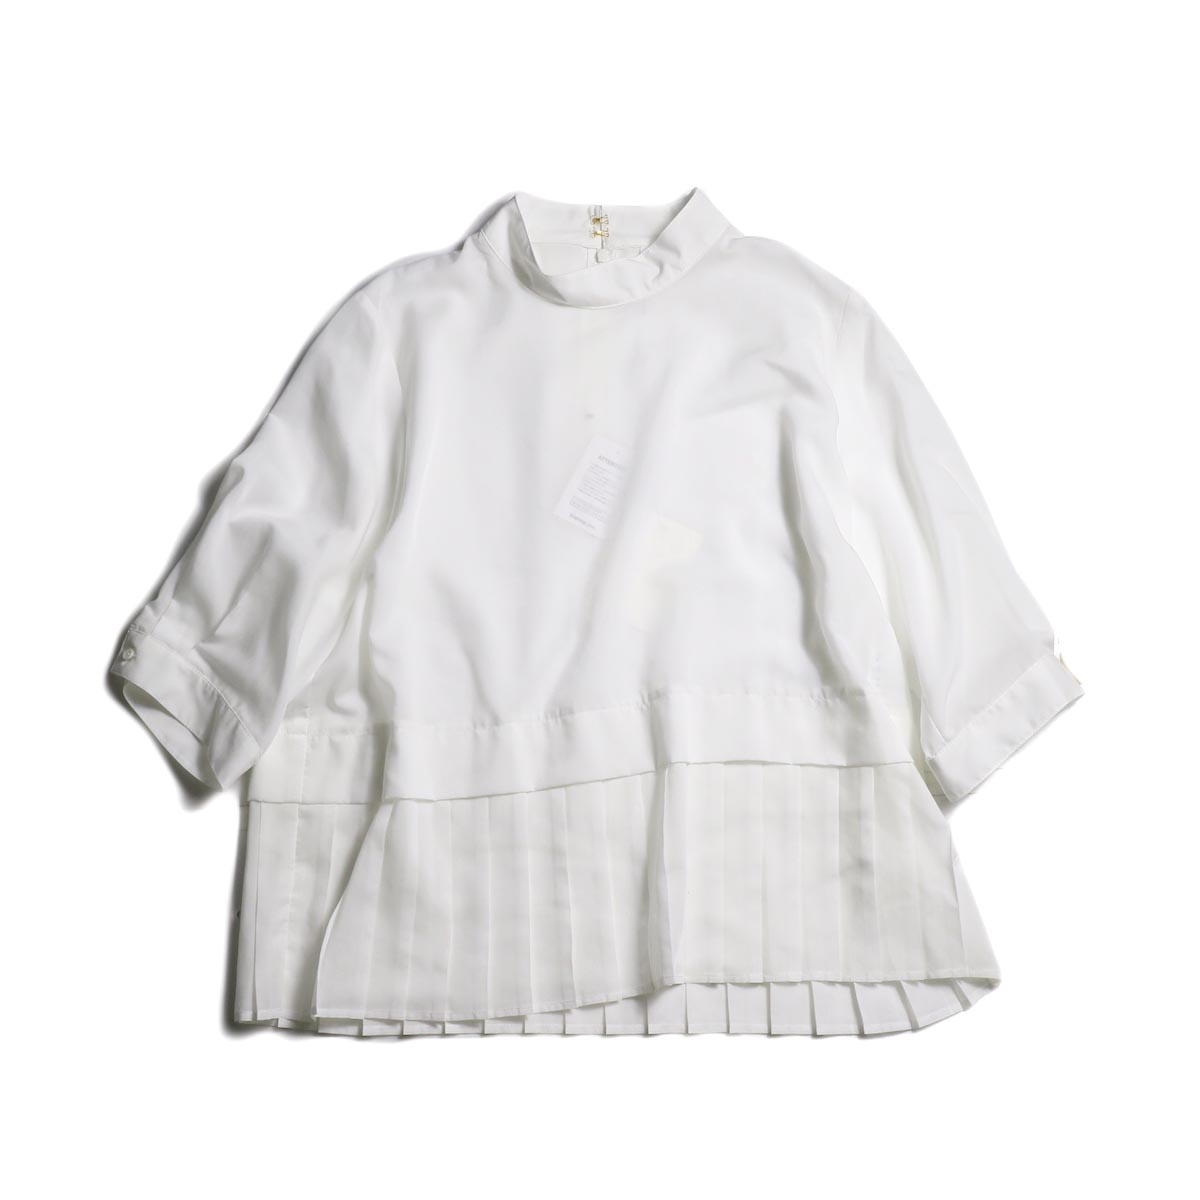 WHYTO. / Stand Collar Pleats Blouse (White)